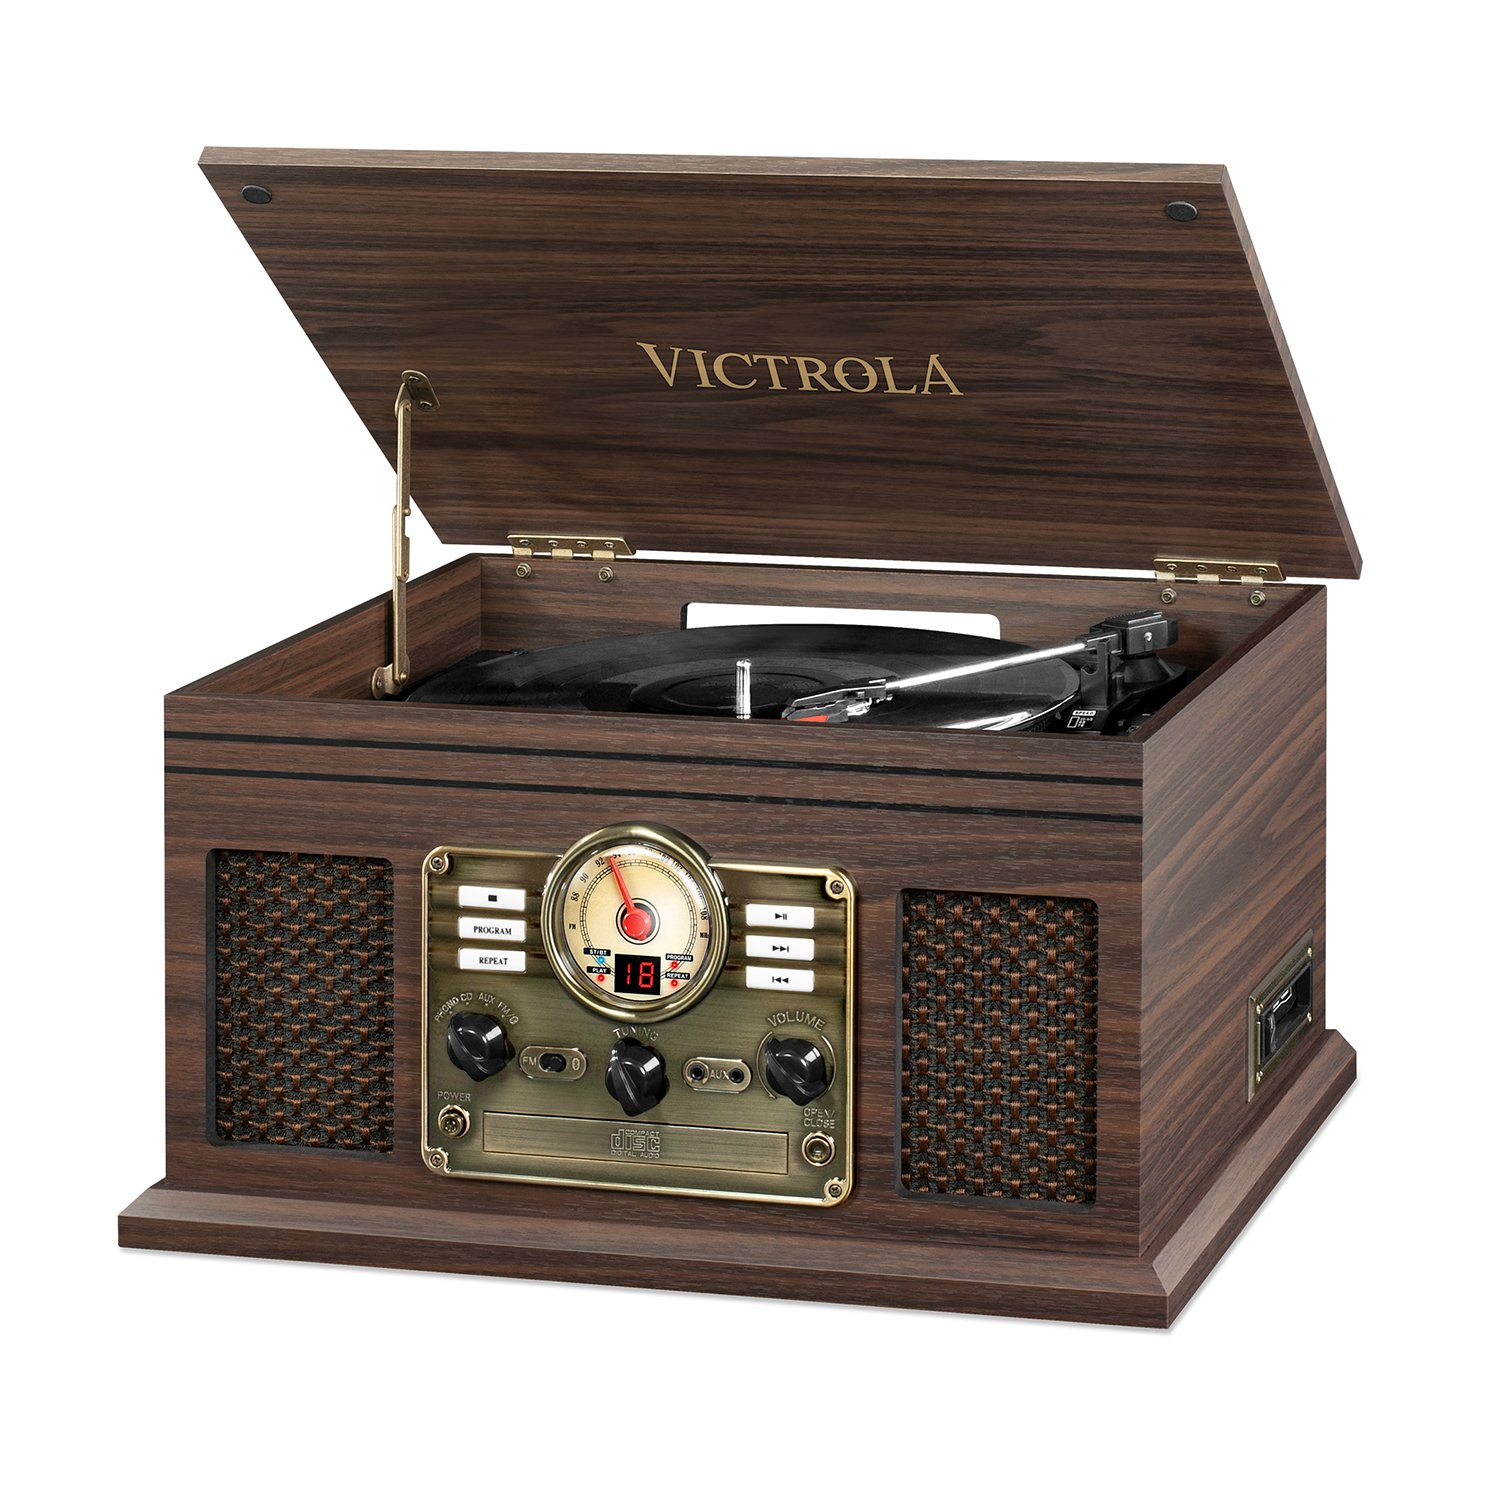 Victrola Nostalgic Classic Wood 6-in-1 Bluetooth Turntable Entertainment Center, Espresso by Victrola